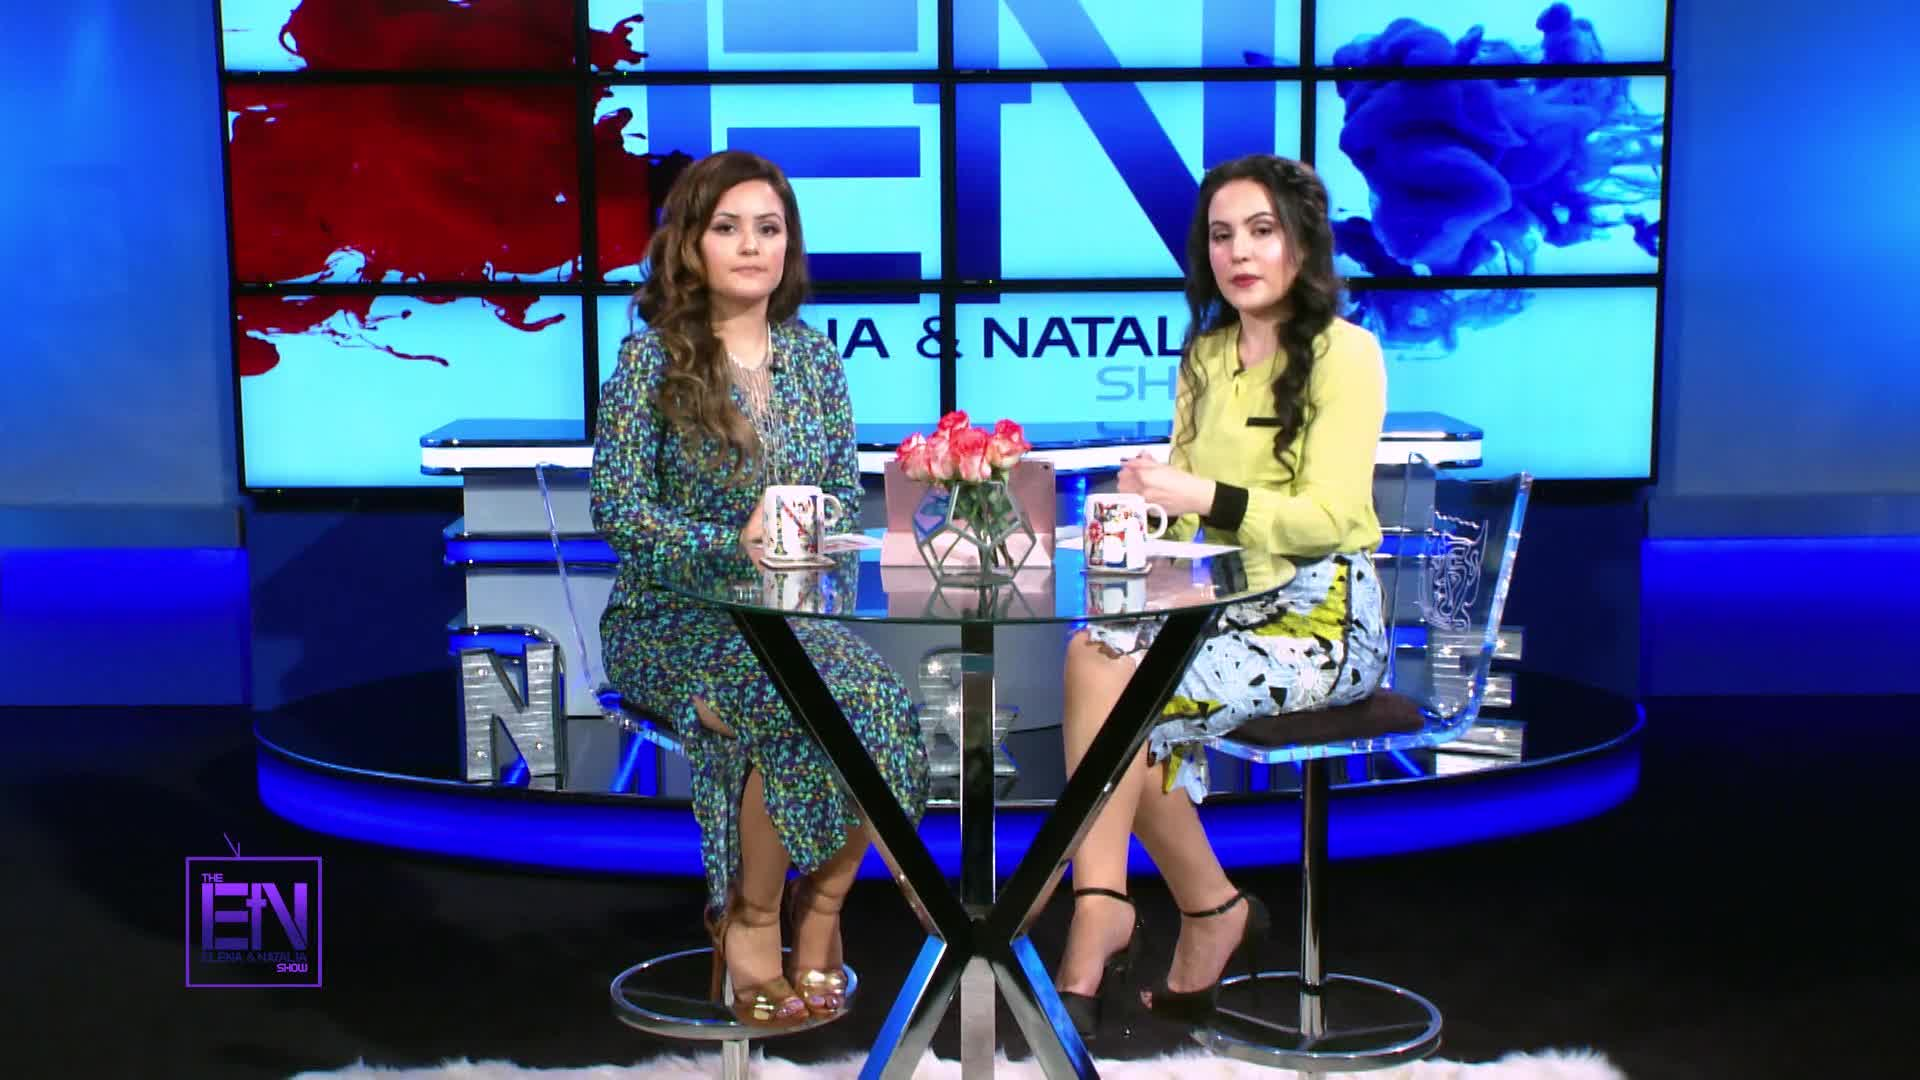 Elena and Natalia Maranian - The Greatest Commandment